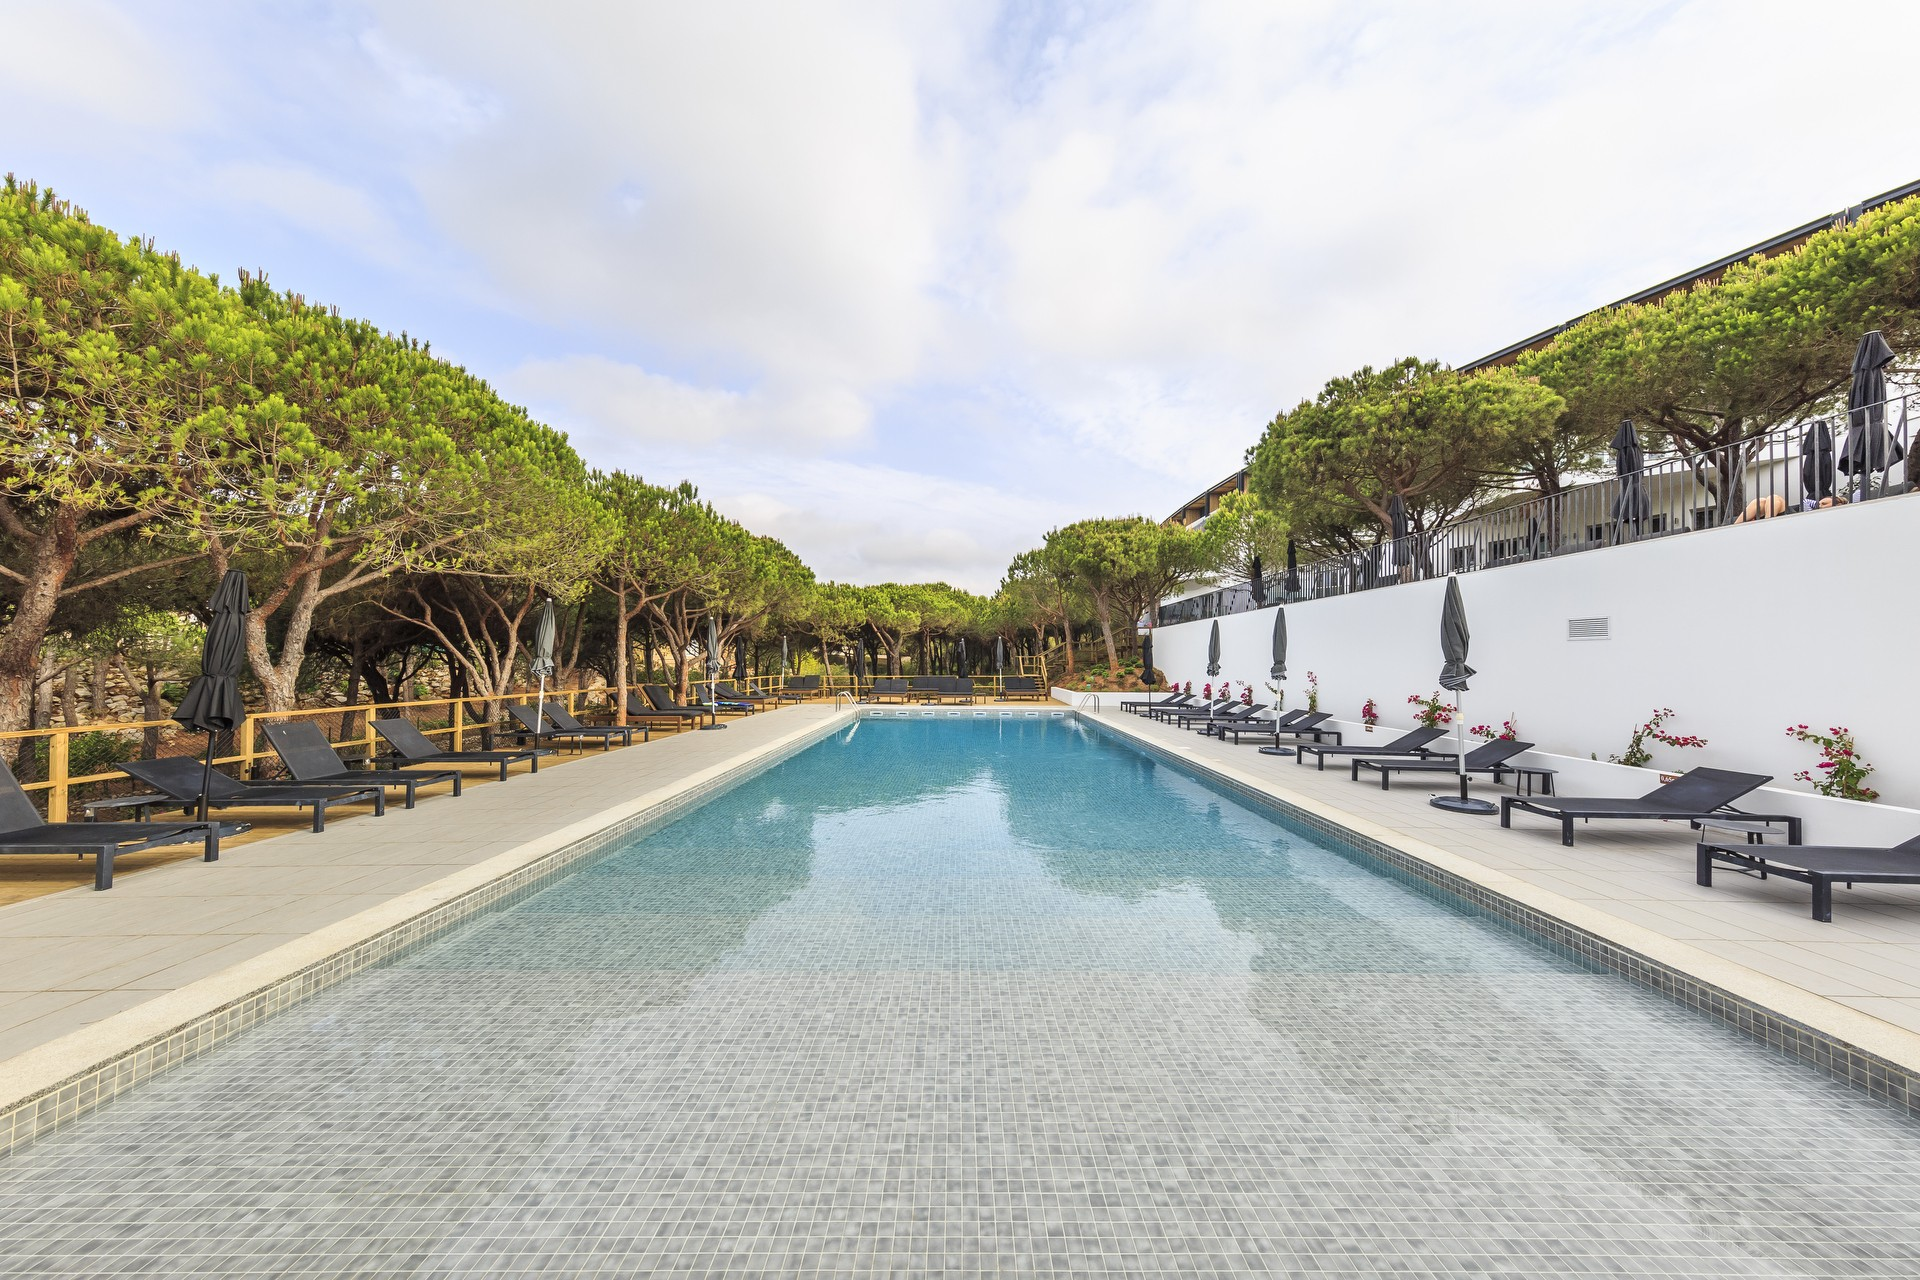 The Best Portuguese Hotels in the South Of Portugal: Praia Verde Boutique Hotel the best portuguese hotels The Best Portuguese Hotels in the South Of Portugal The Best Portuguese Hotels in the South Of Portugal 7